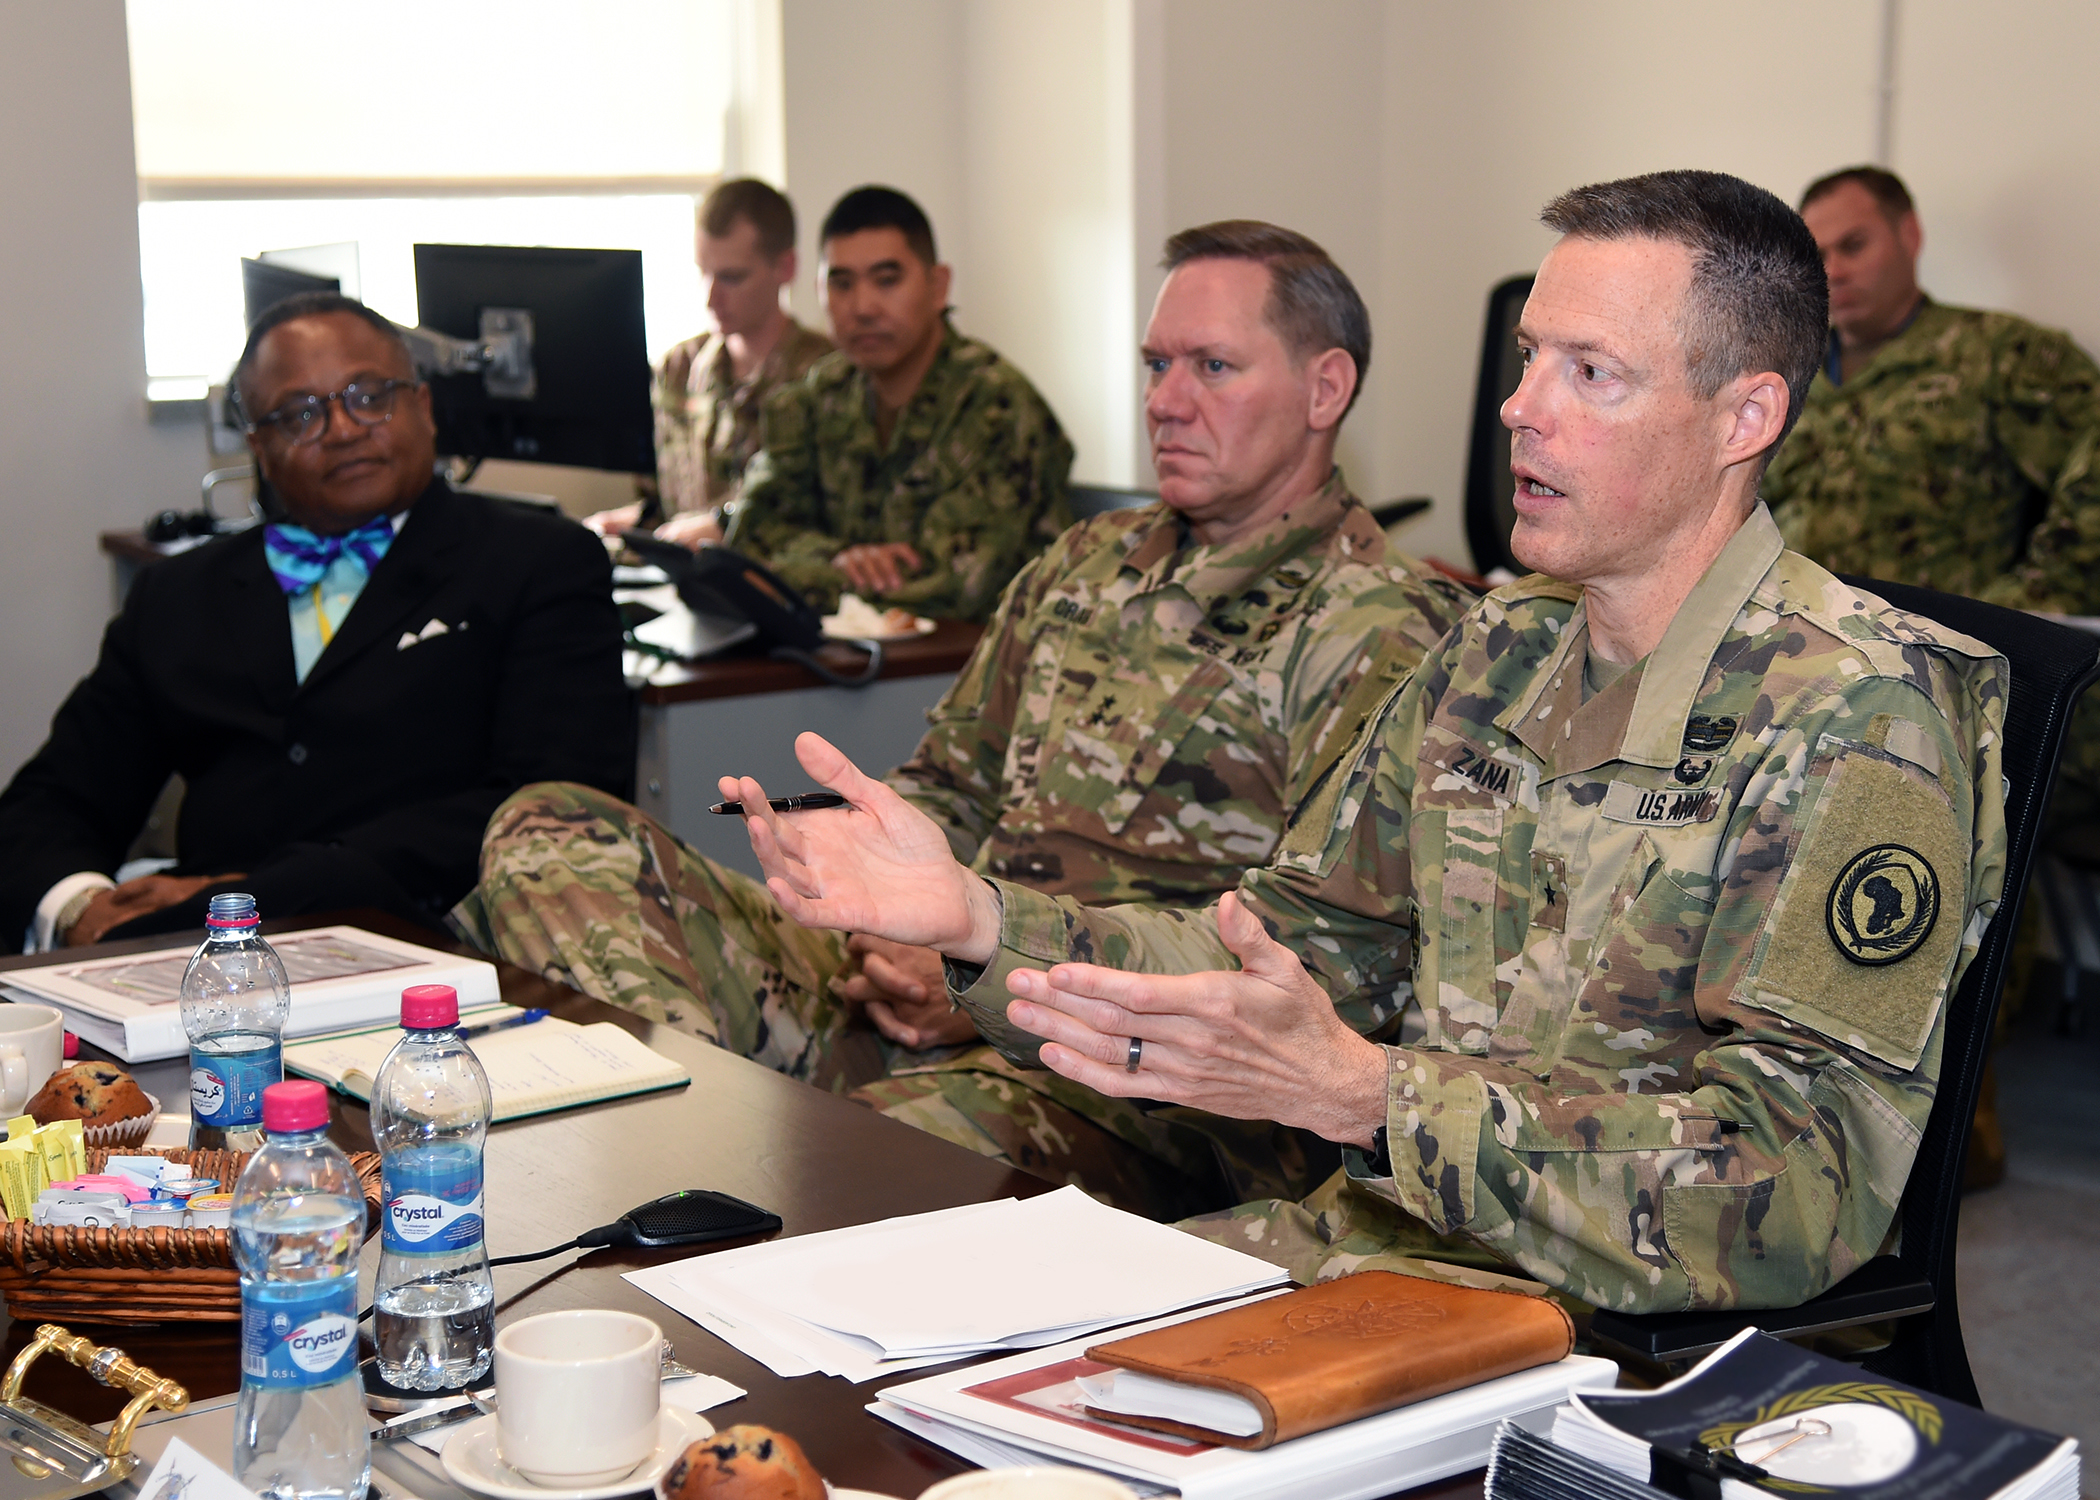 U.S. Army Maj. Gen. James D. Craig (center), commanding general, Combined Joint Task Force-Horn of Africa (CJTF-HOA), listens as U.S. Army Brig. Gen. William Zana (right), CJTF-HOA deputy commanding general, addresses U.S. diplomats at a meeting during the CJTF-HOA East Africa Security Forum (EASF) at Camp Lemonnier, Djibouti Dec. 12. The EASF provides opportunities for CJTF-HOA and interagency leaders to assess and align efforts, and develop synchronized courses of action that support common goals. (U.S. Navy photo by Mass Communication Specialist 1st Class Nick Scott)